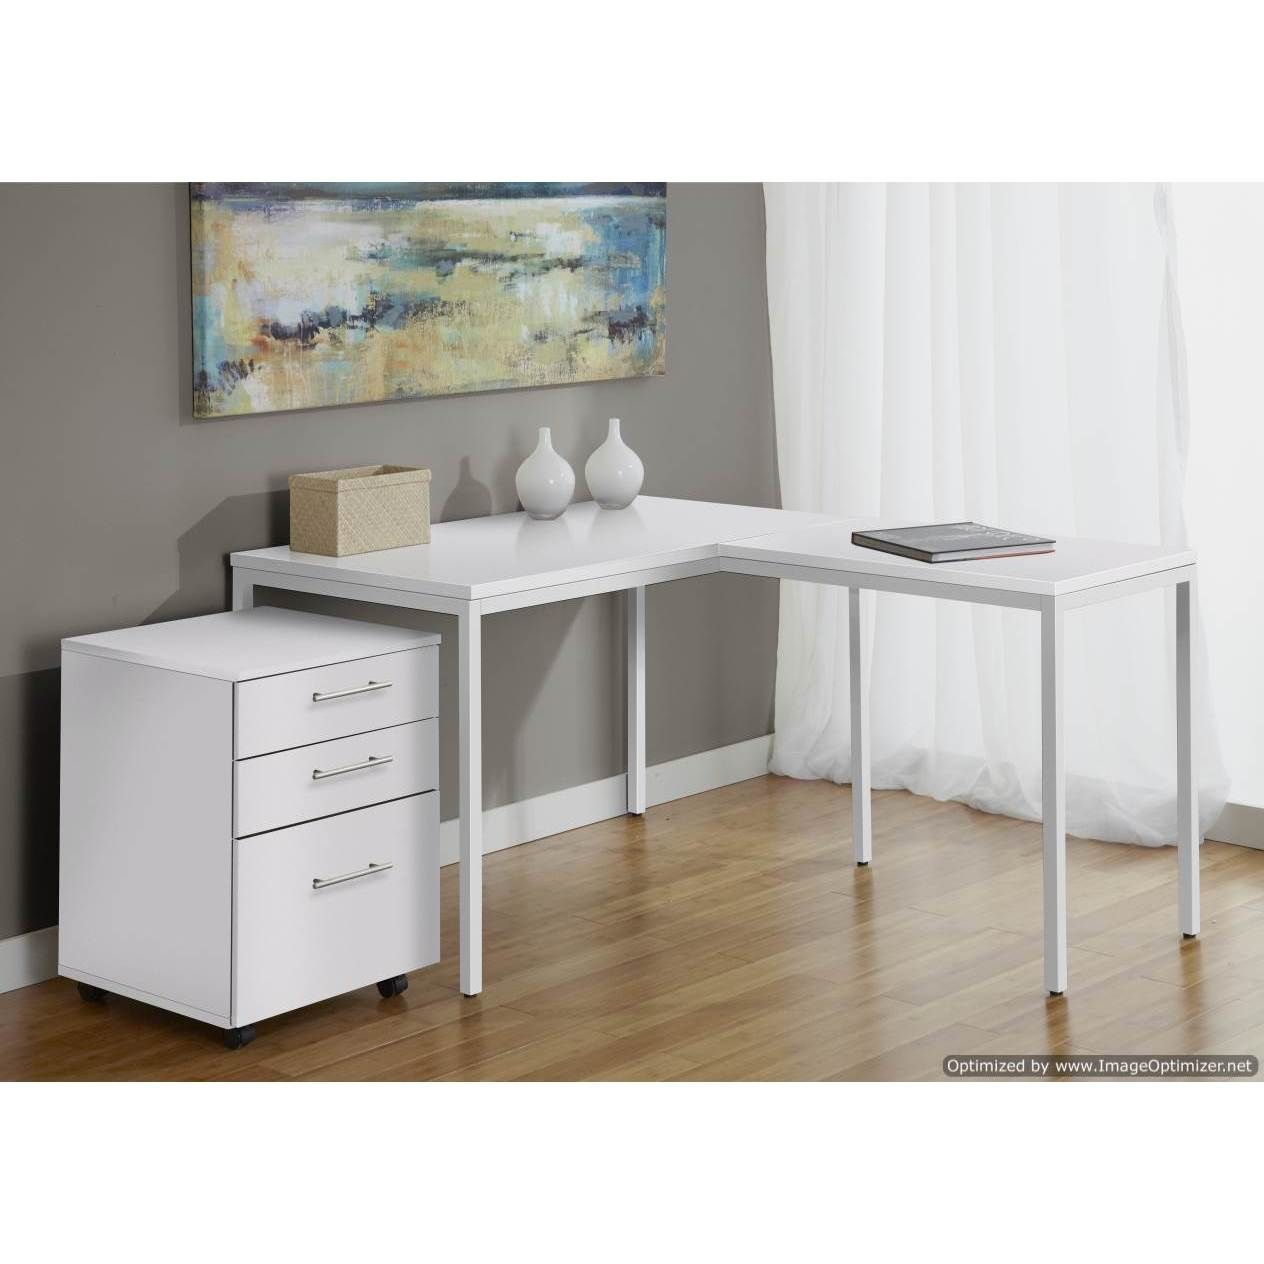 jesper office parsons l shaped desk with mobile pedestal in  x  - jesper office parsons l shaped desk with mobile pedestal in